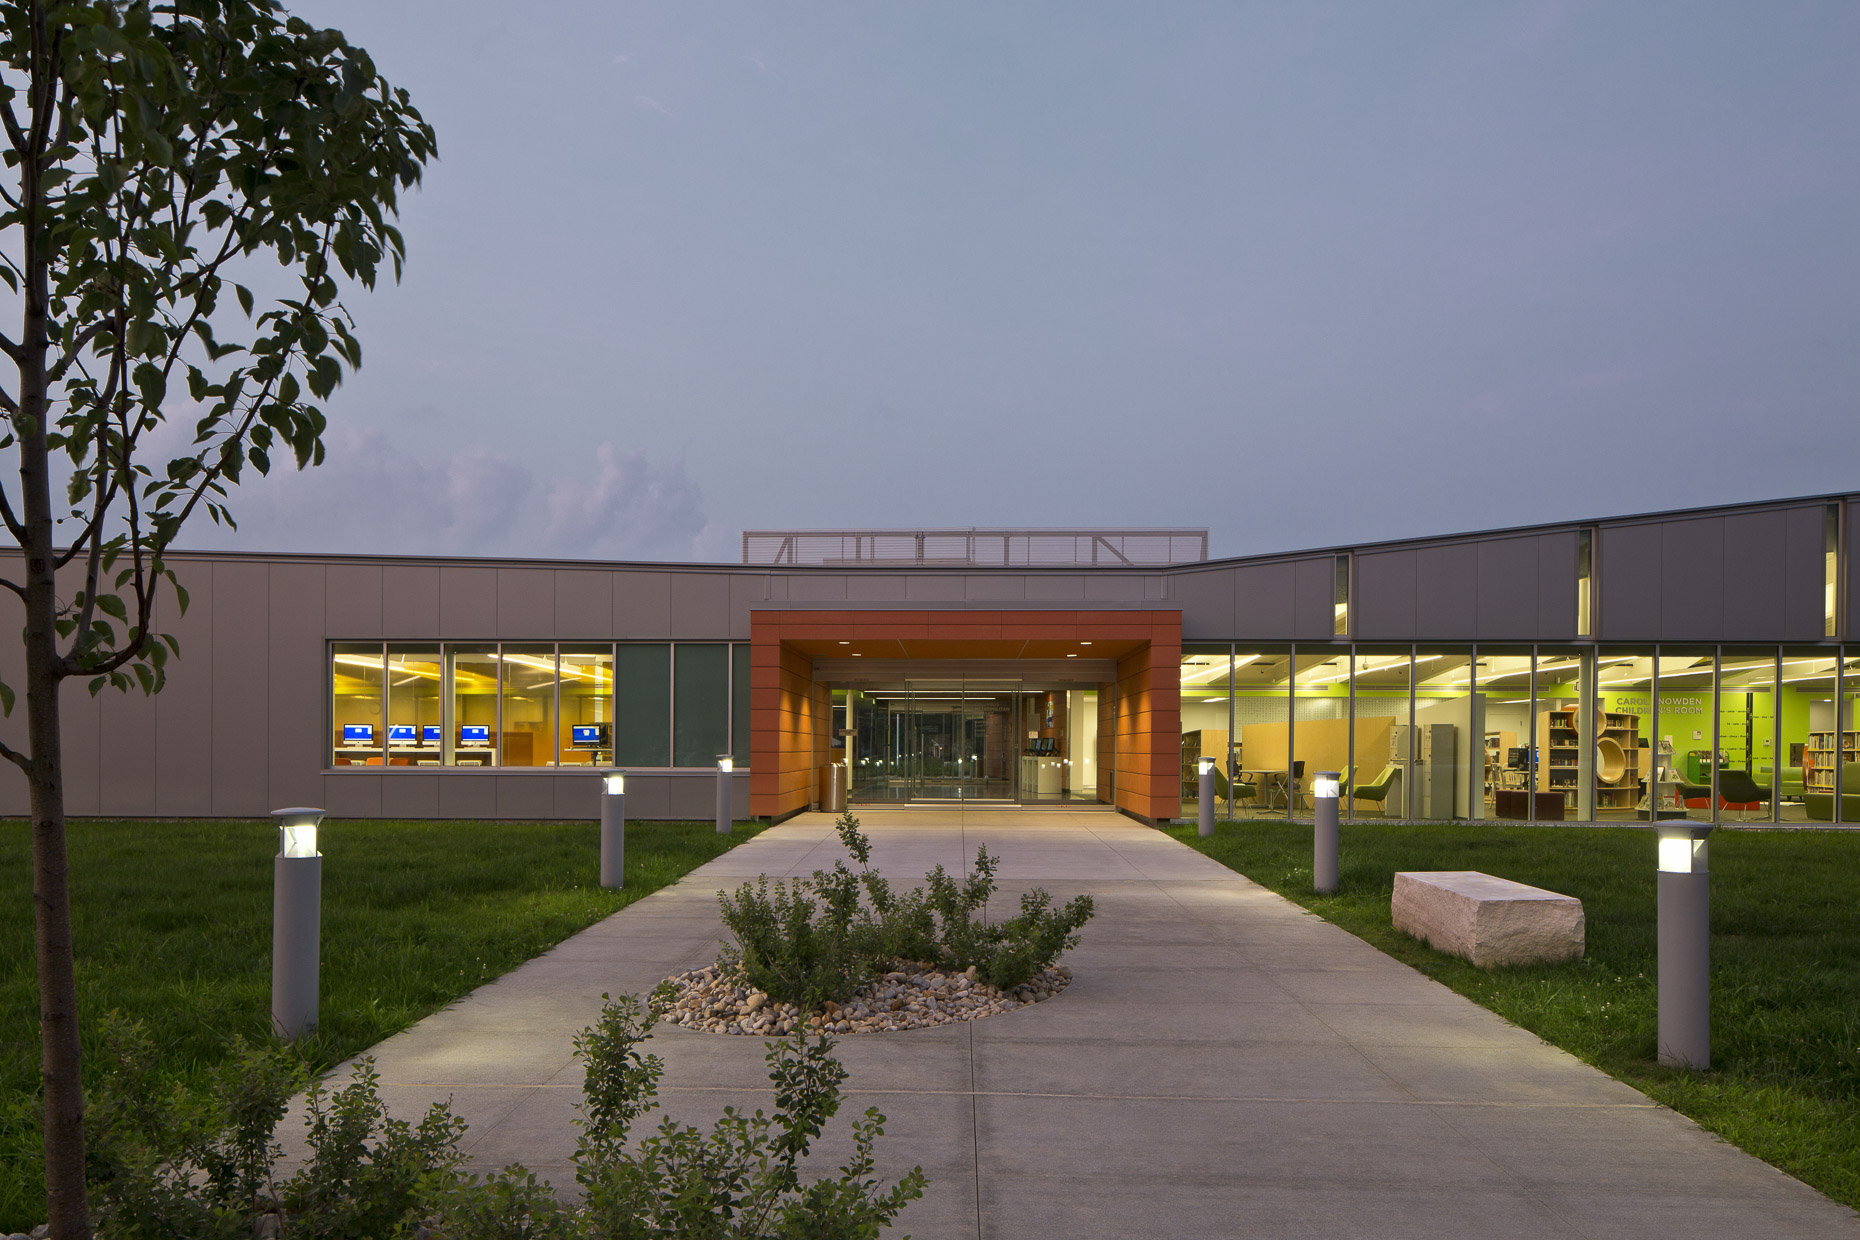 Columbus Metropolitan Library Whitehall Branch by Jonathan Barnes Architecture + Design Photographed by Brad Feinknopf based in Columbus, Ohio